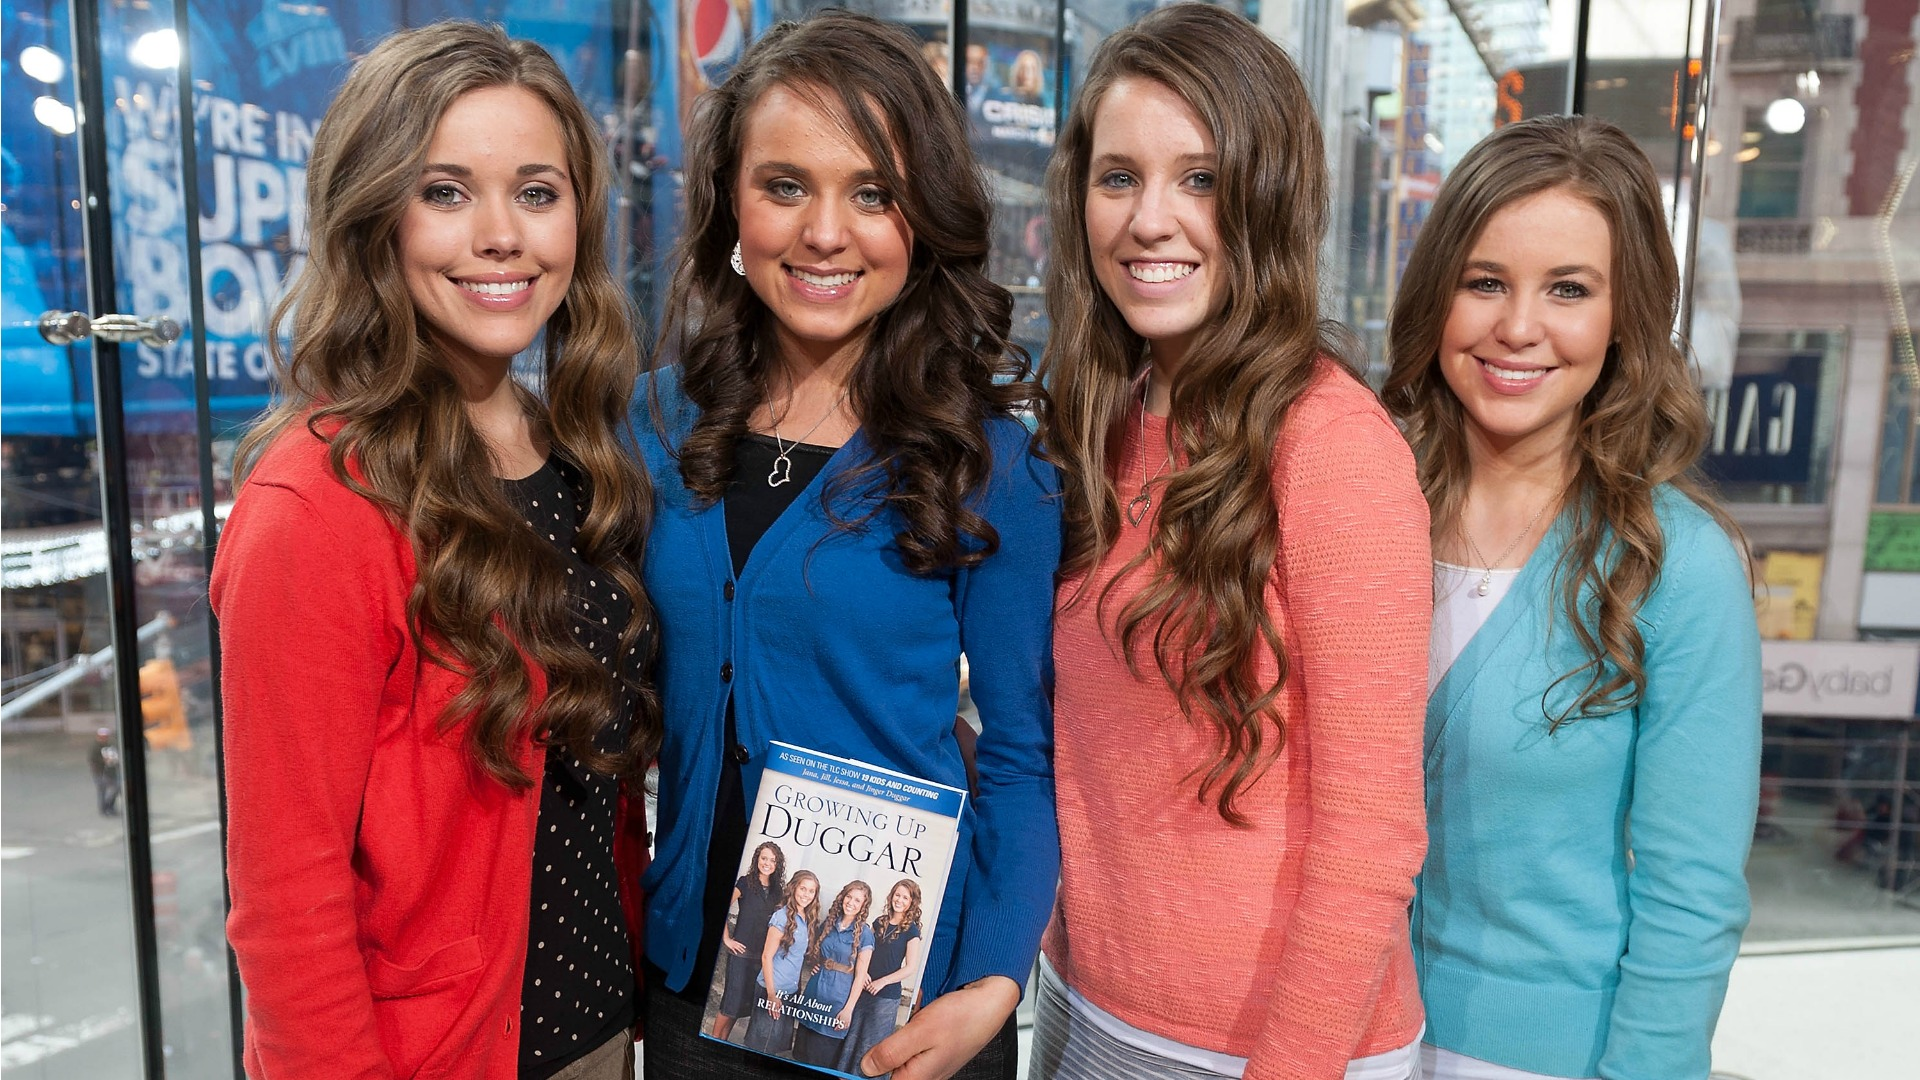 Jessa Duggar and Ben Seewald to wed after 11 months of kiss-free courting